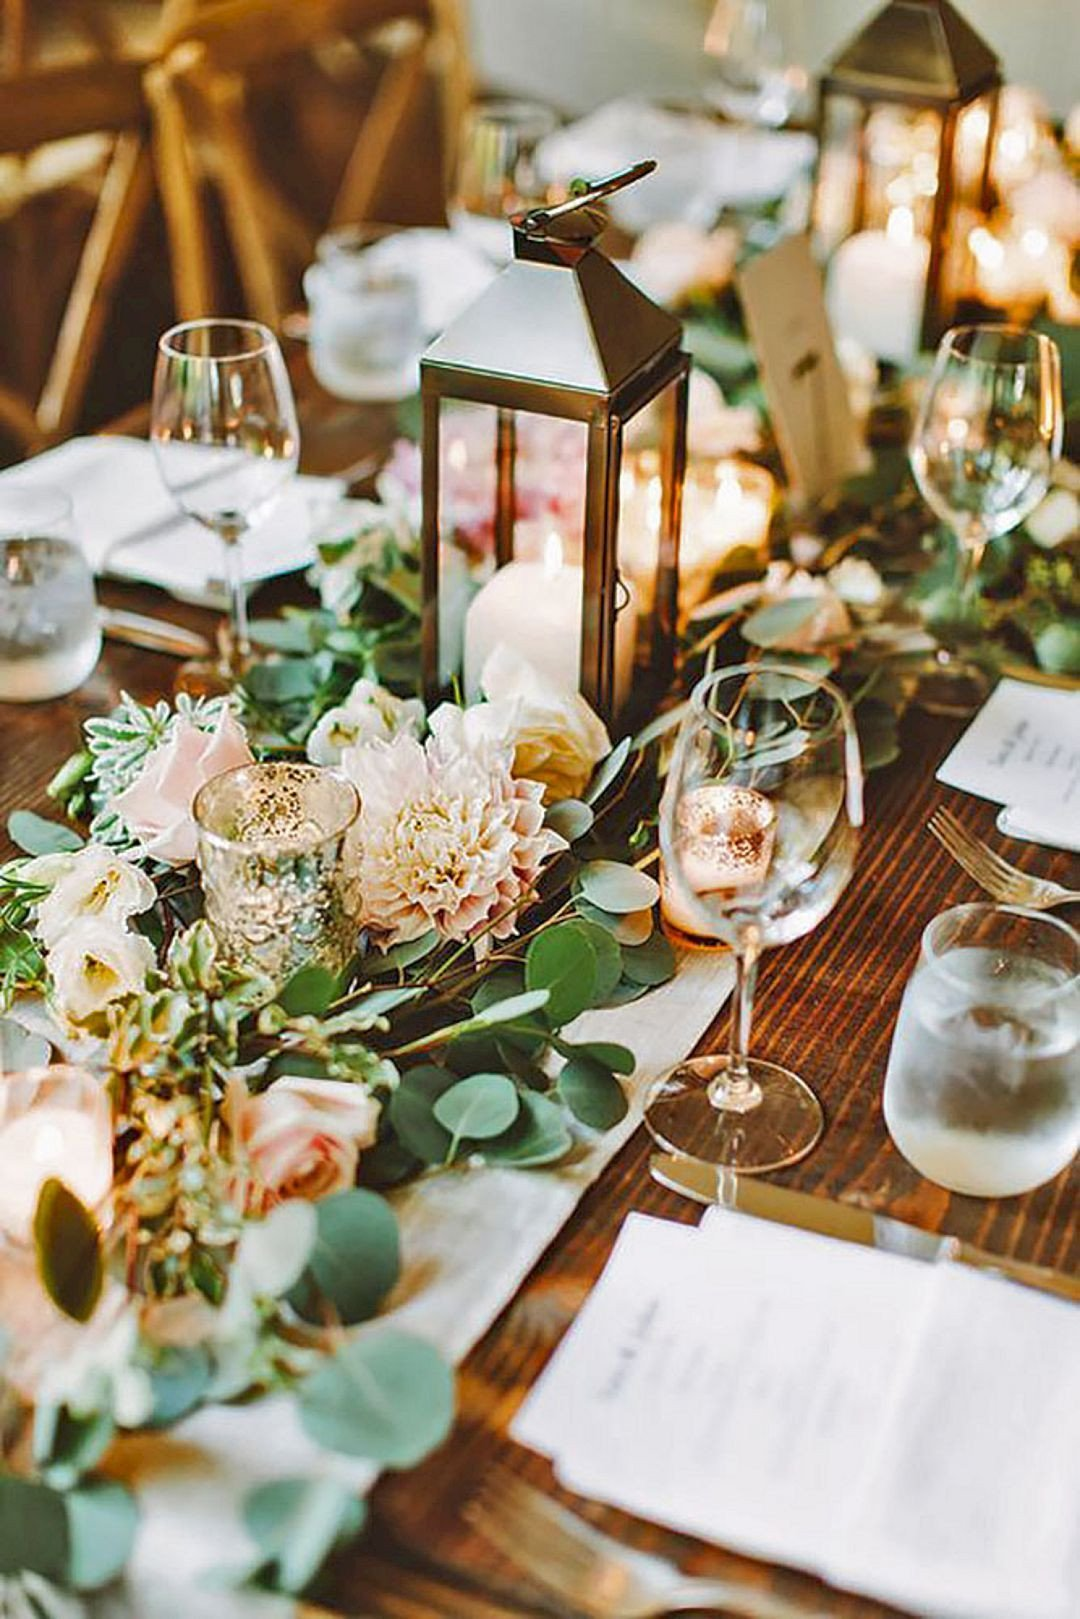 Rustic Table Decor for Weddings Fresh 24 Diy Creative Rustic Chic Wedding Centerpieces Ideas Flowers